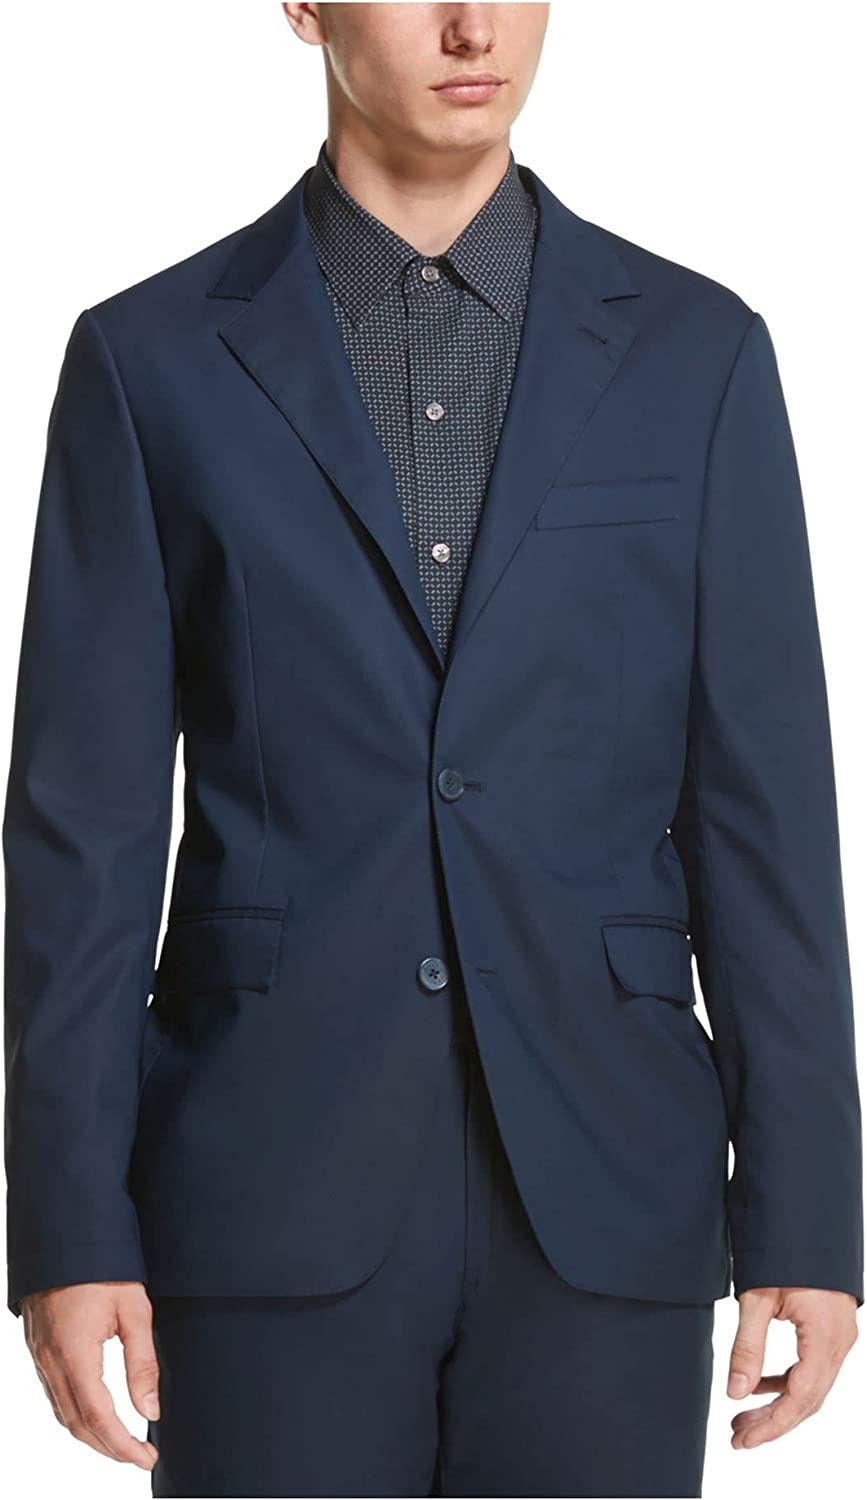 DKNY Mens Business Office Two-Button Blazer